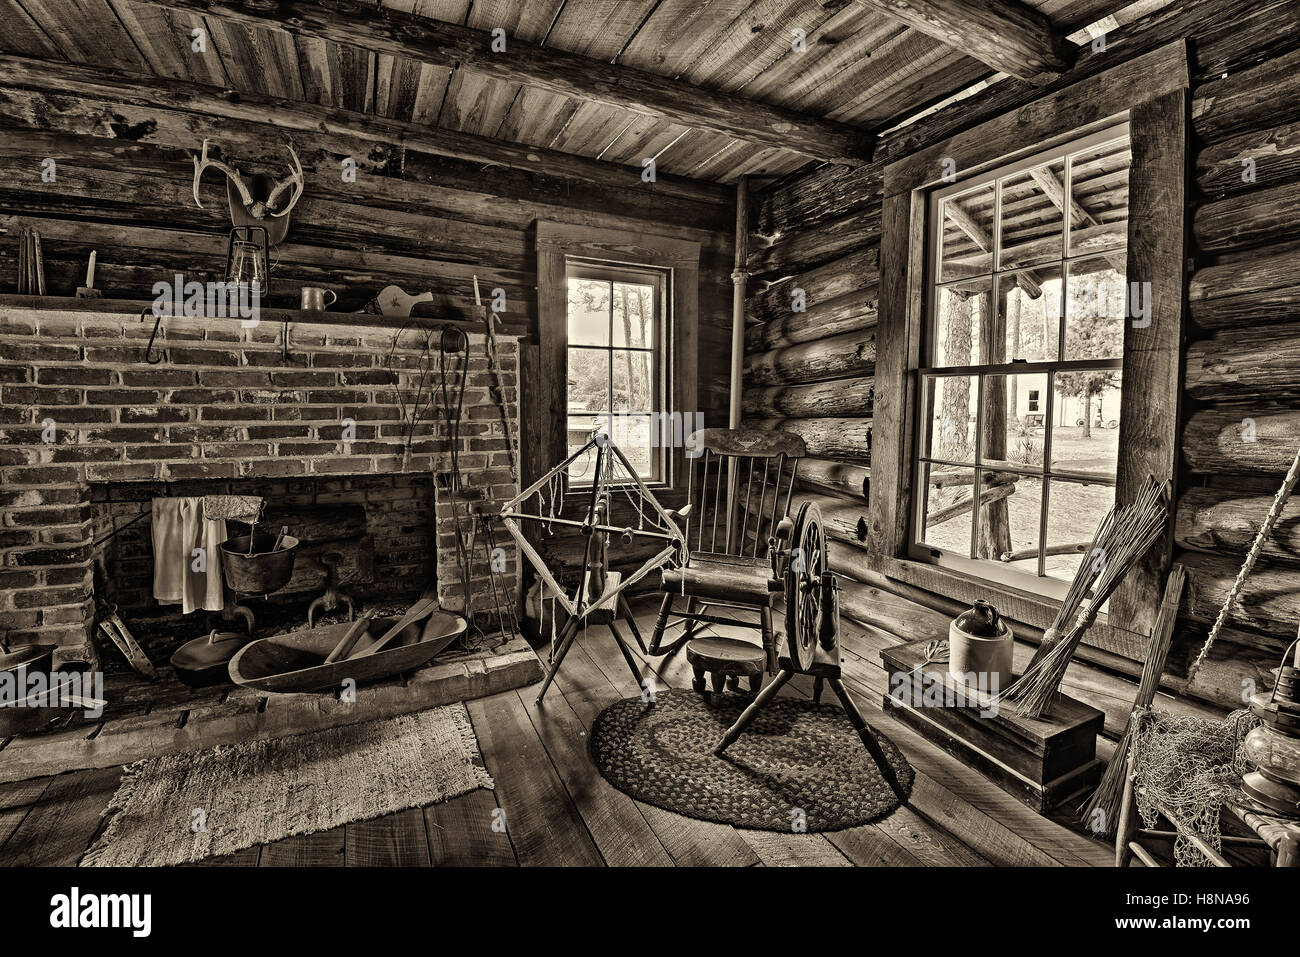 Interior of the historic McMullen-Coachman Log House in the Pinellas County Heritage Village. - Stock Image